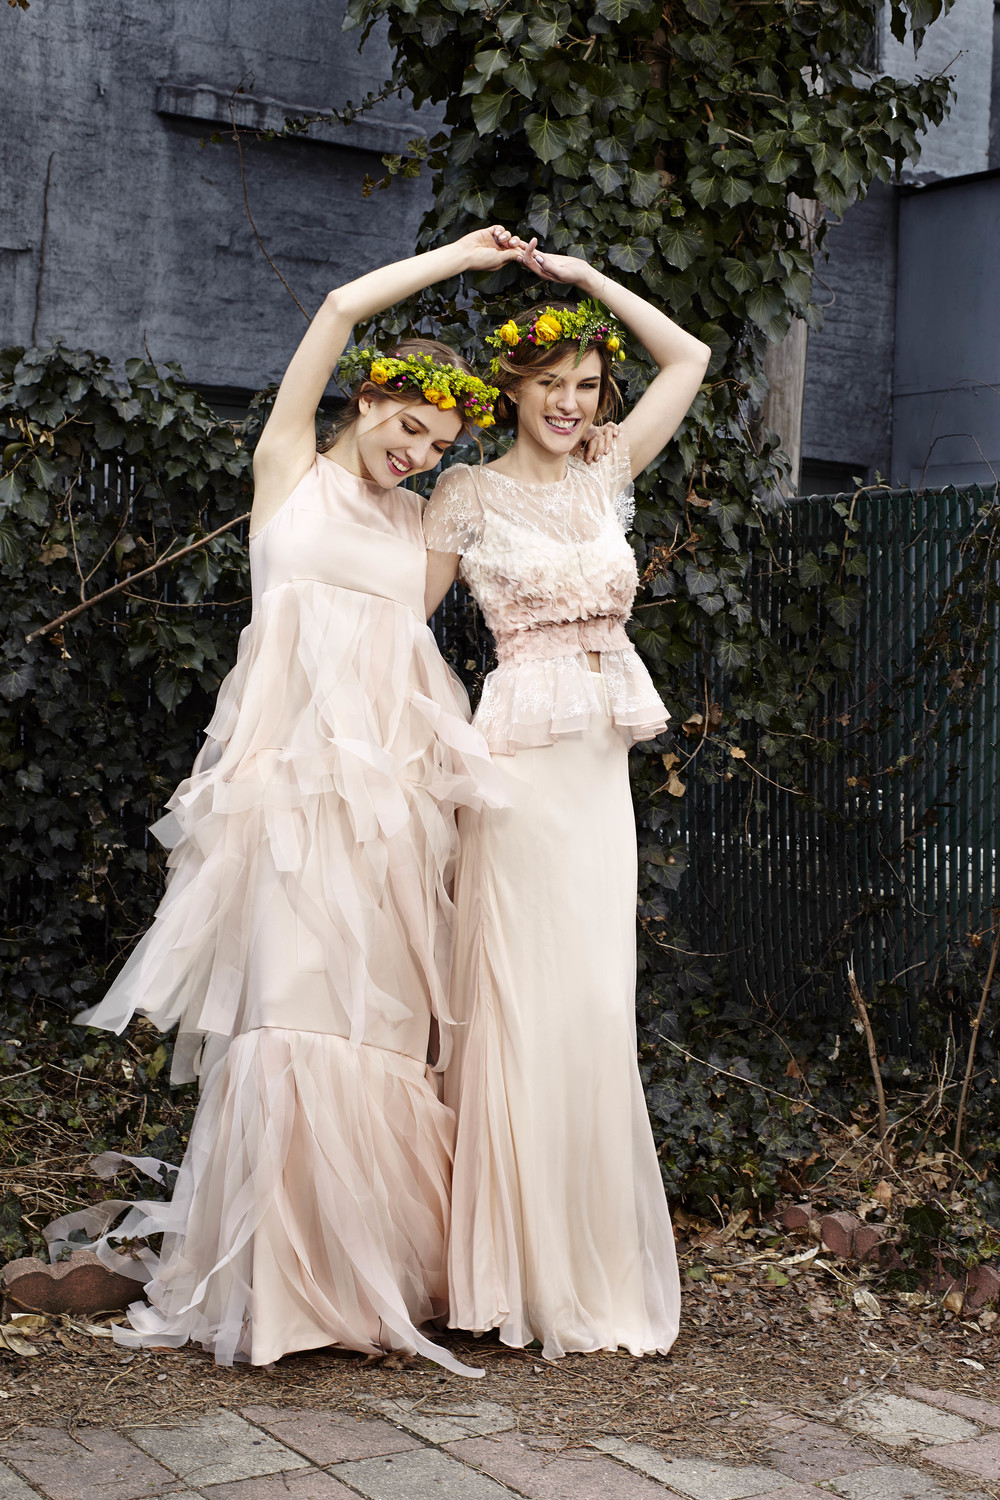 Left, CoCo gown in Blush Right, Pascale top and skirt in Blush, both Bridal Collection